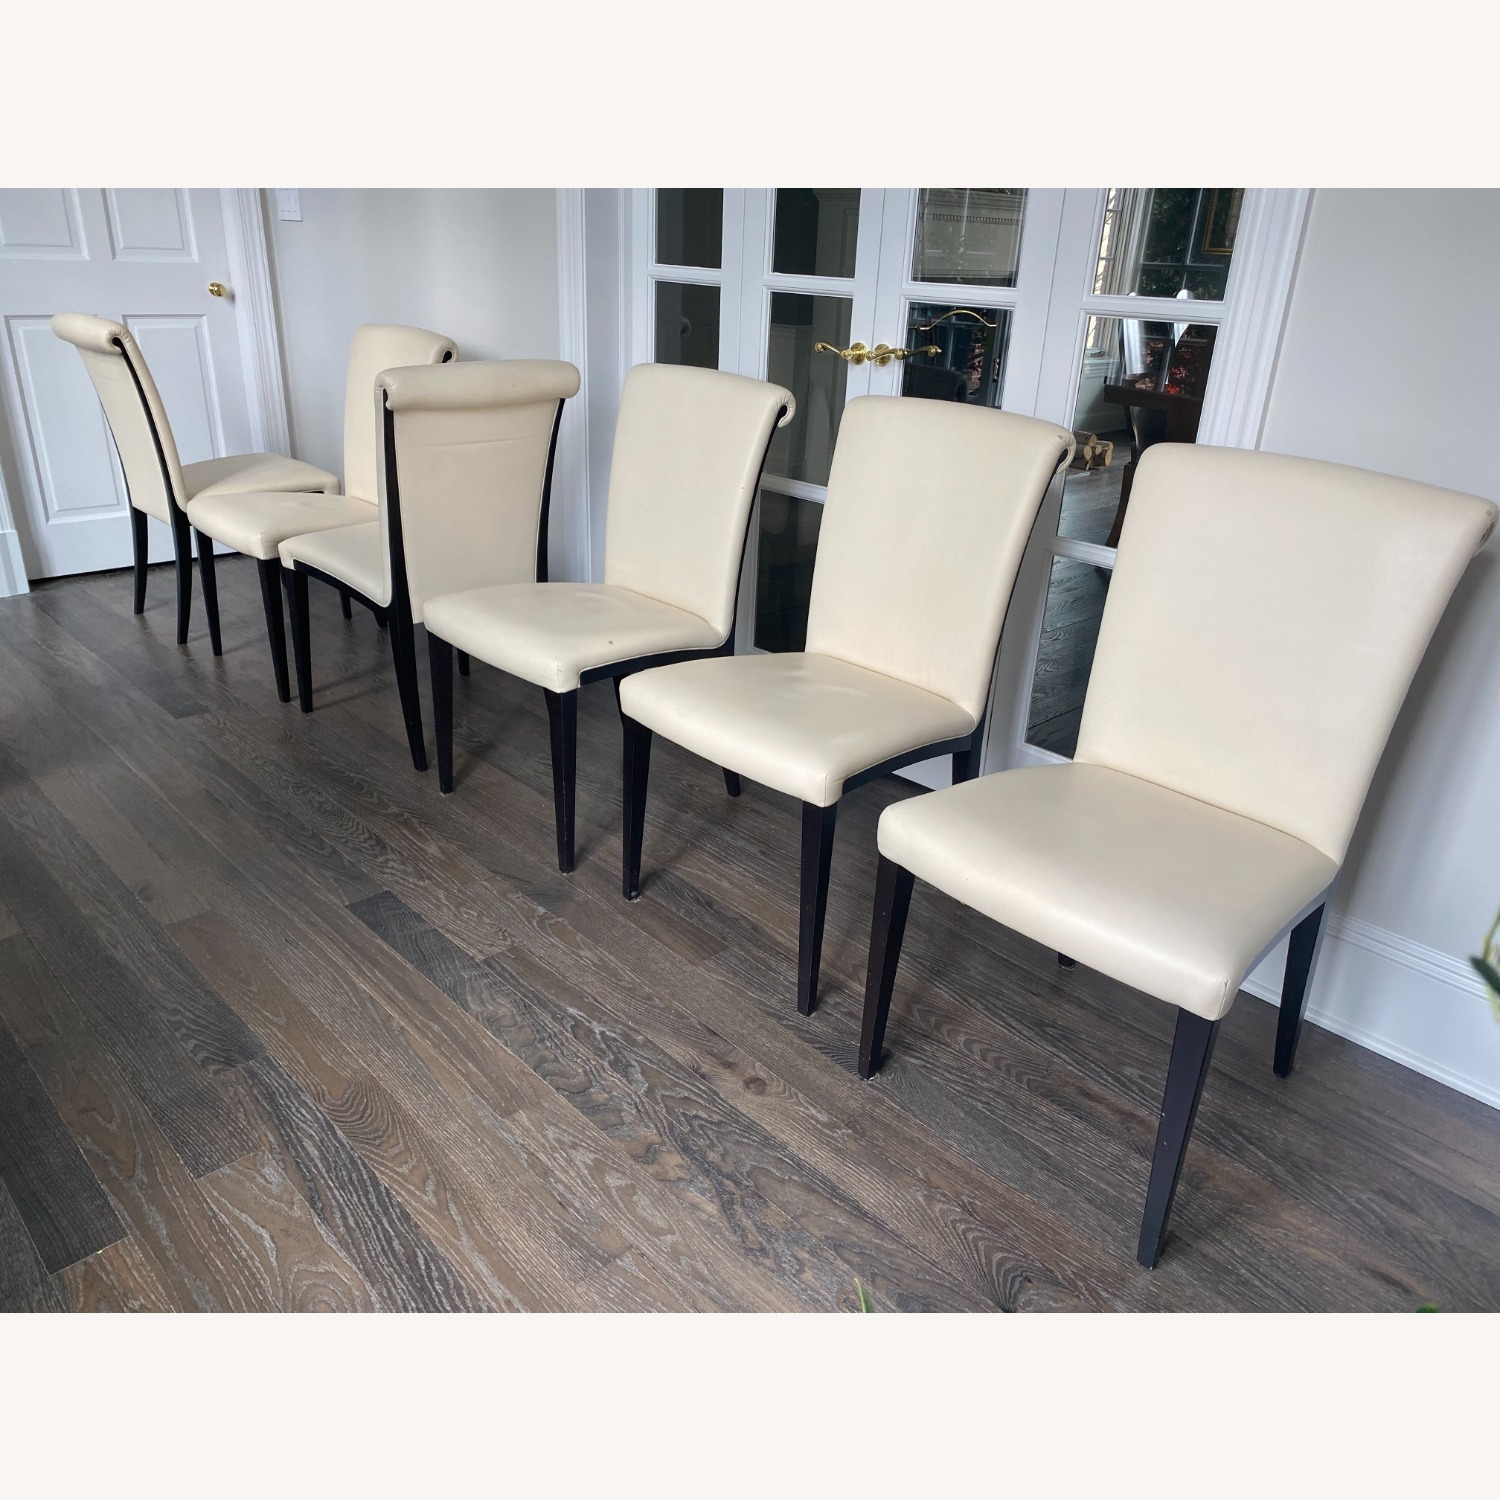 Poltrona Frau set of 6 Leather Dining Chairs - image-2